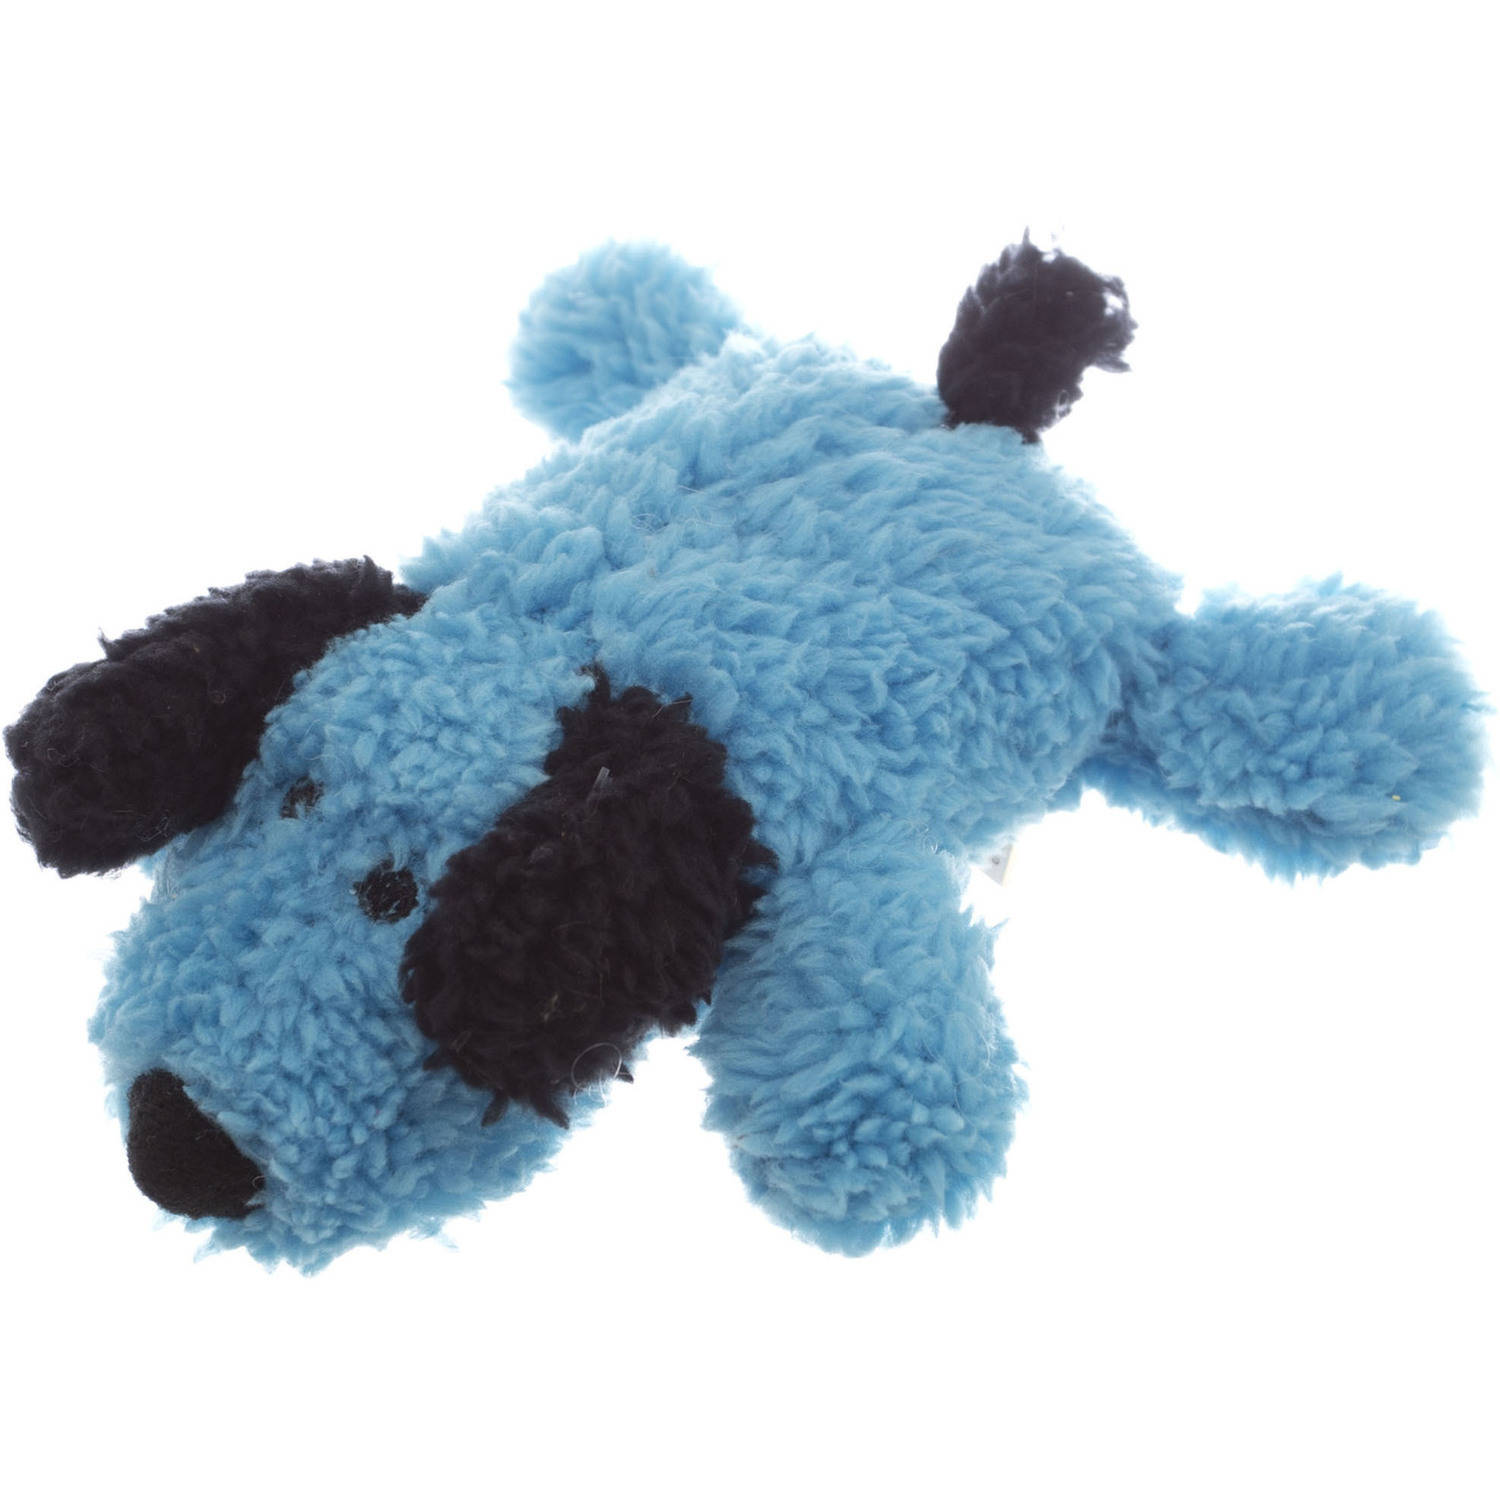 "6.5"" Super Soft Squeaky Dog Toy, Sky Blue Puppy by DAN-DEE INTERNATIONAL LTD"